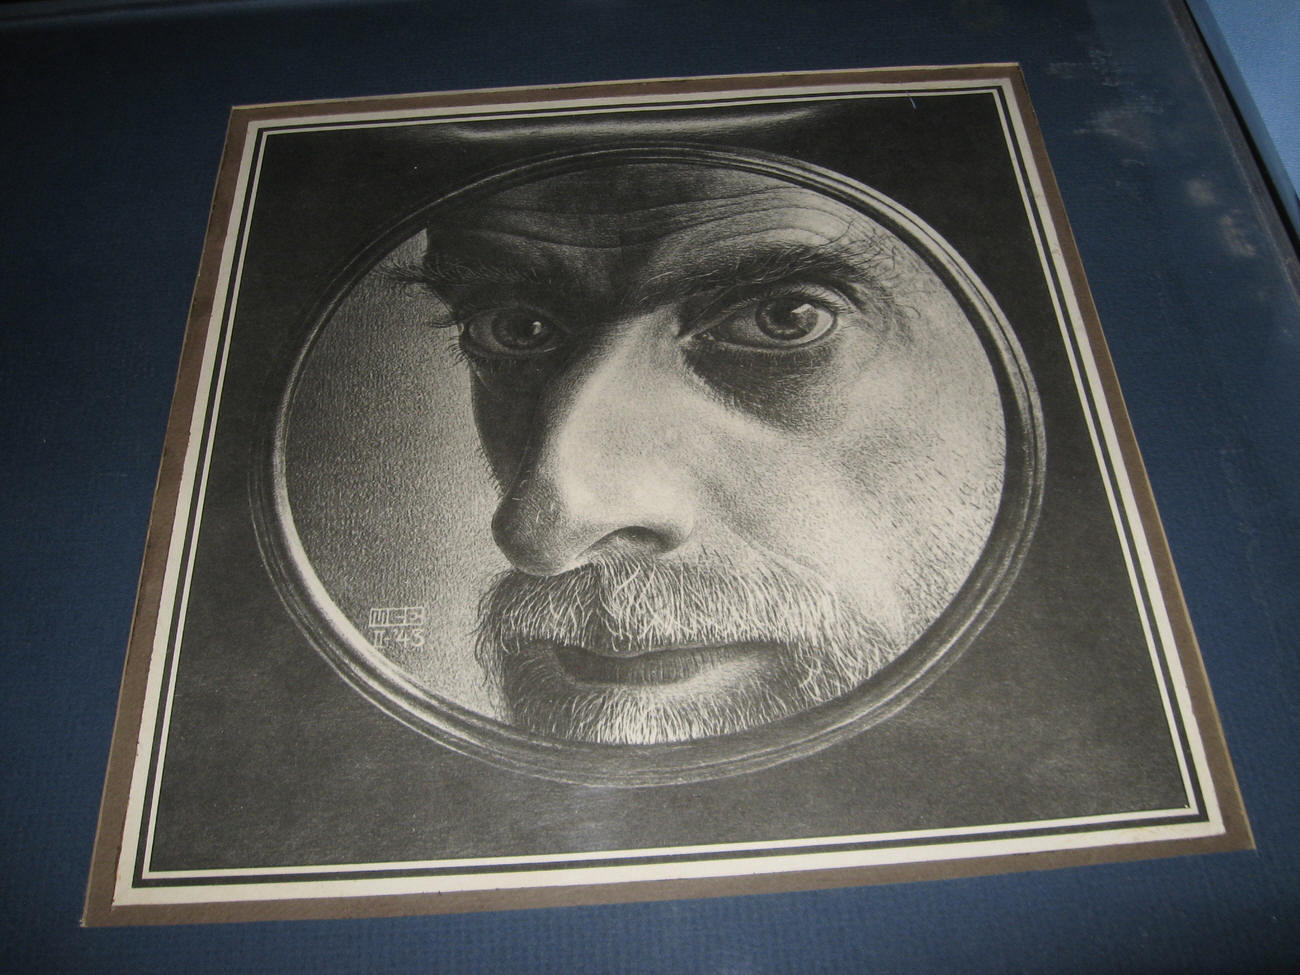 M C Escher 1943 framed artist self portrait matted rare Maurits Cornelis